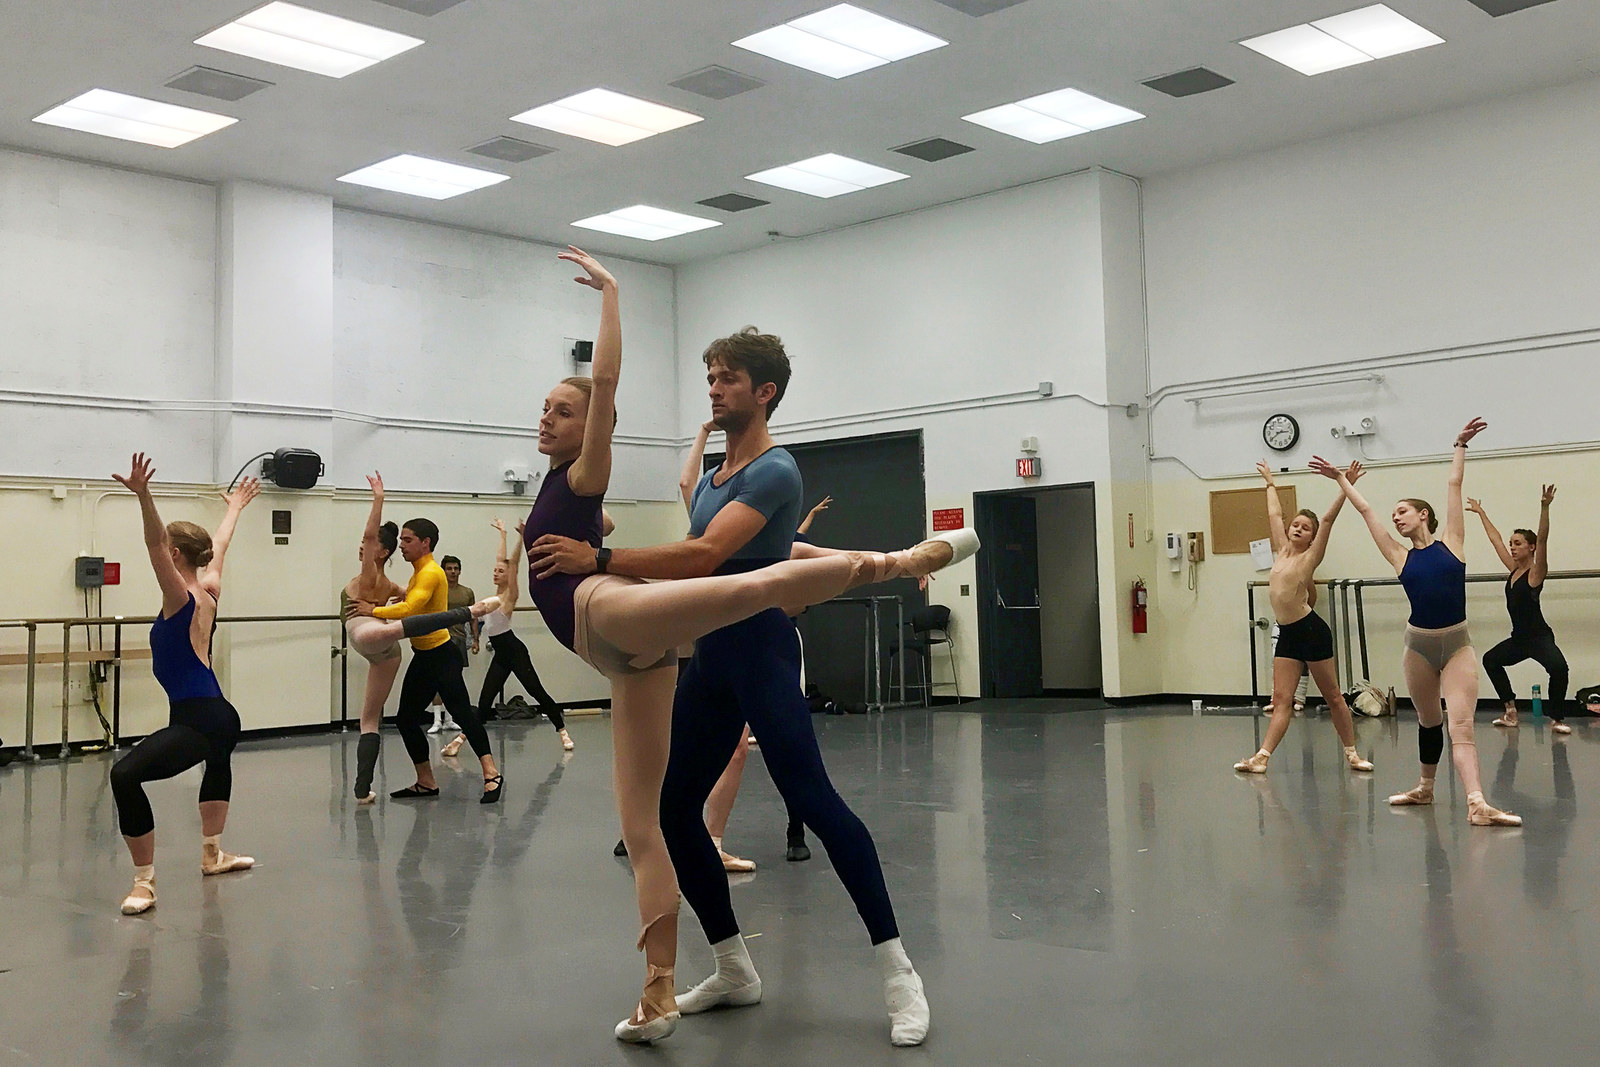 Members of the New York City Ballet rehearse before a performance at the Lincoln Center Festival, July 2017.